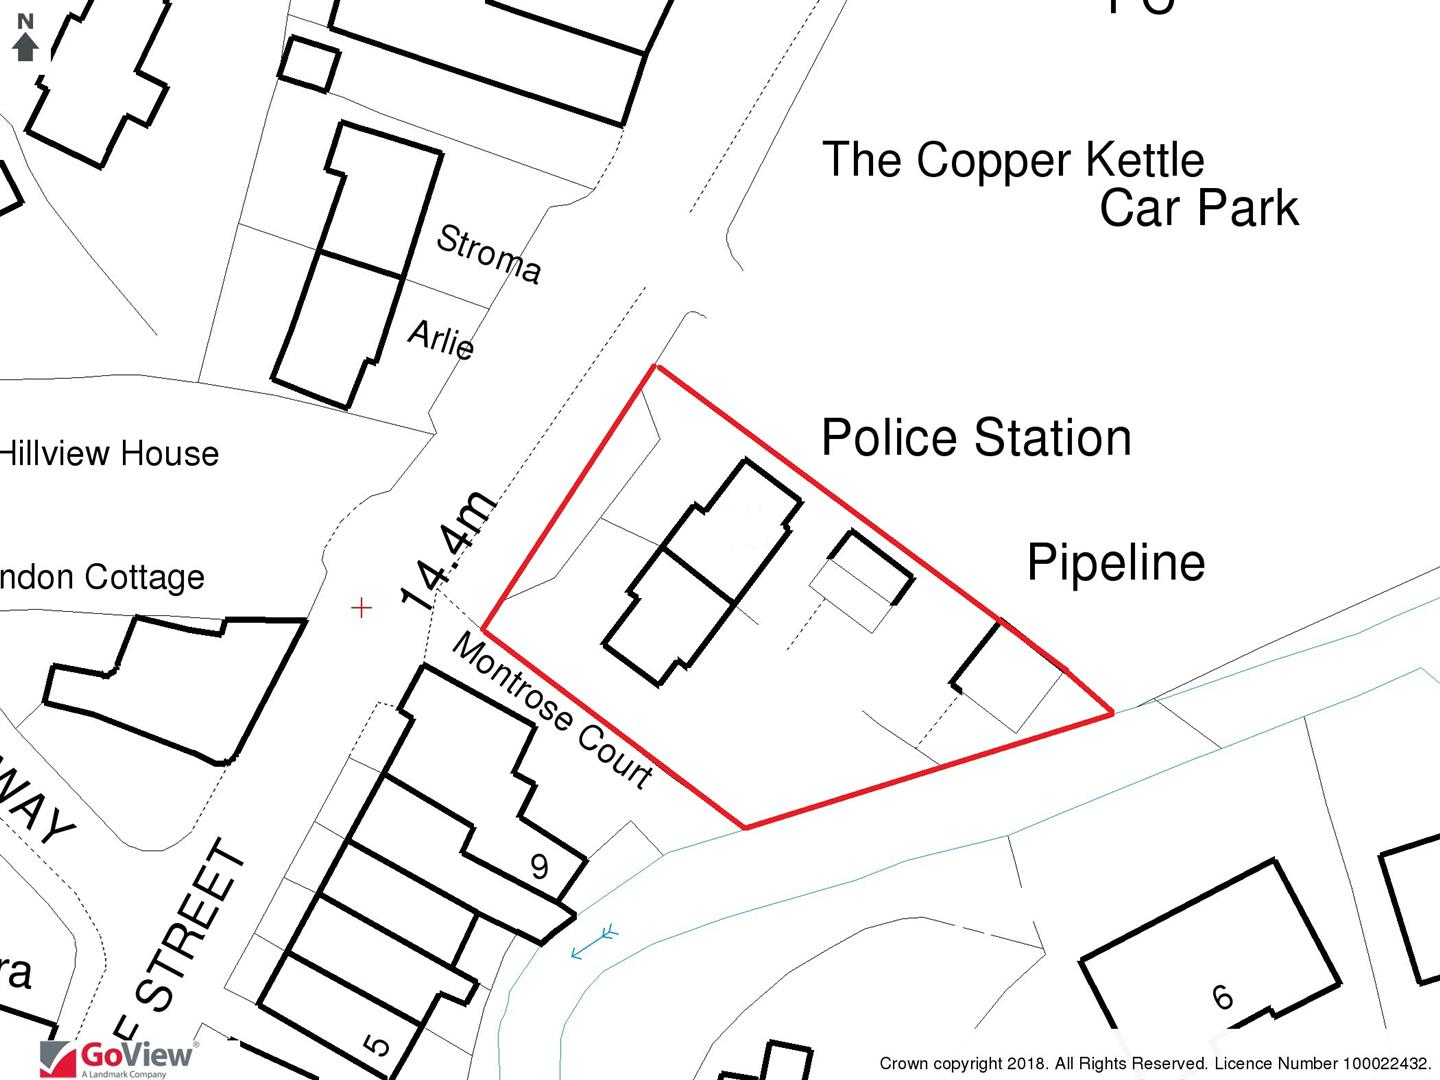 Images for PLANNING GRANTED - 2 X SEMI DETACHED HOUSES EAID:hollismoapi BID:11